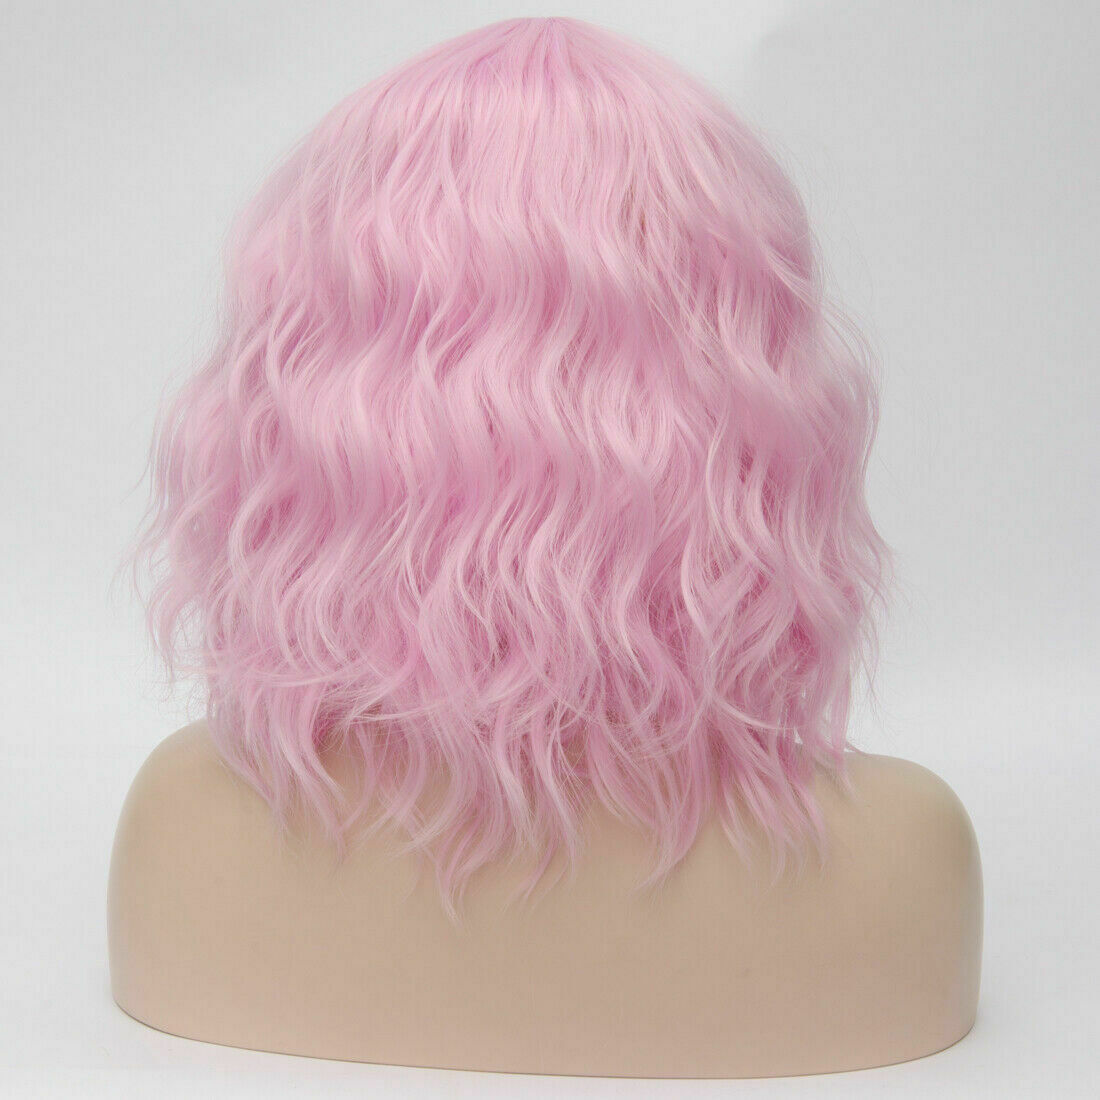 Lolita-Women-039-s-Short-Curly-Anime-Synthetic-Hair-Heat-Resistant-Cosplay-Party-Wig miniature 43